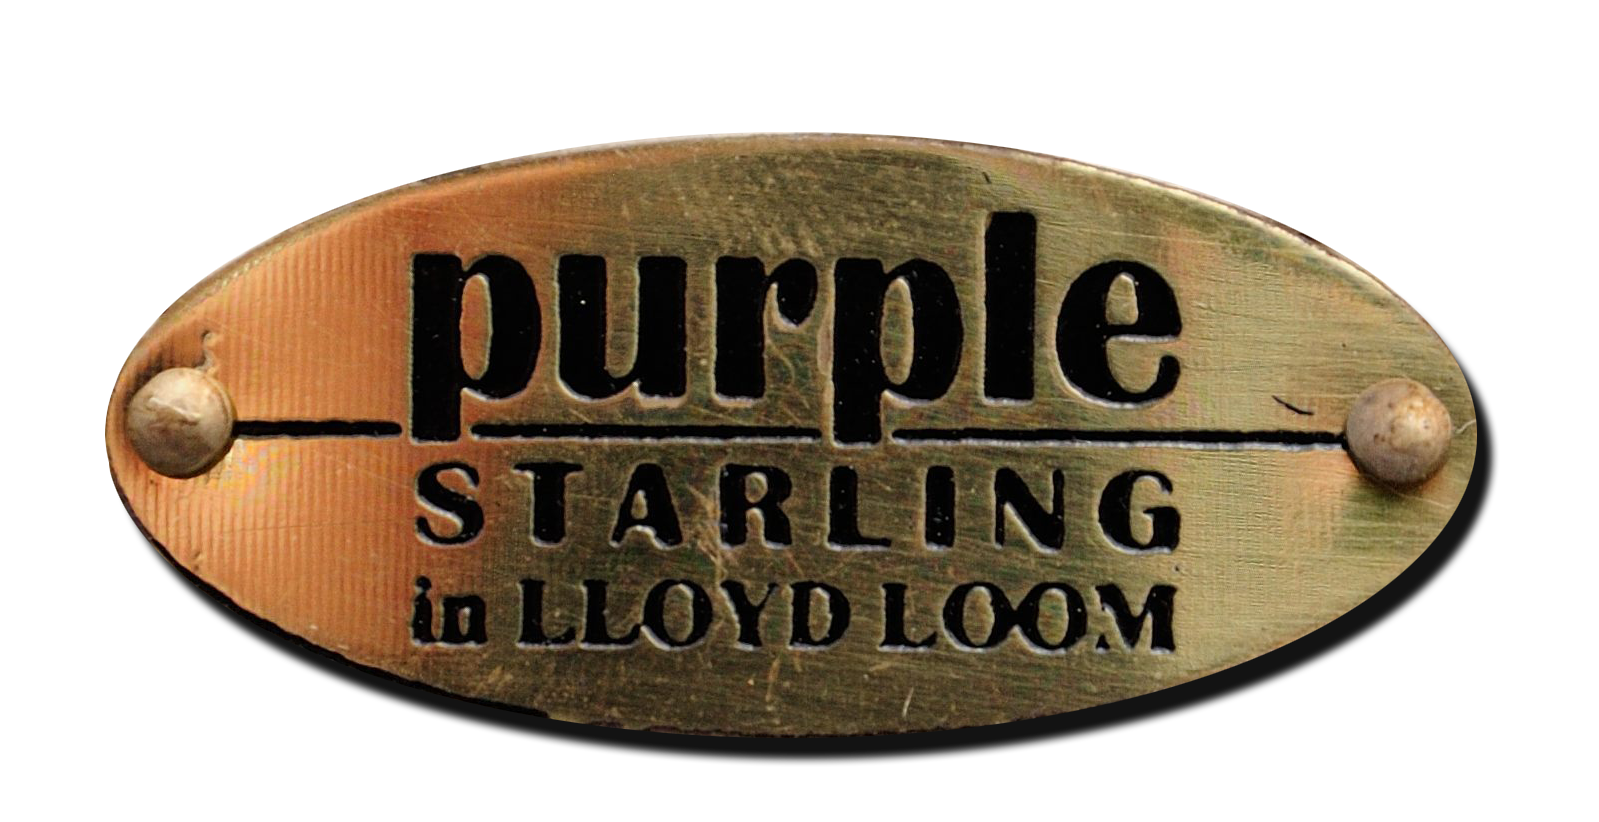 Lloyd loom merk Purple Starling